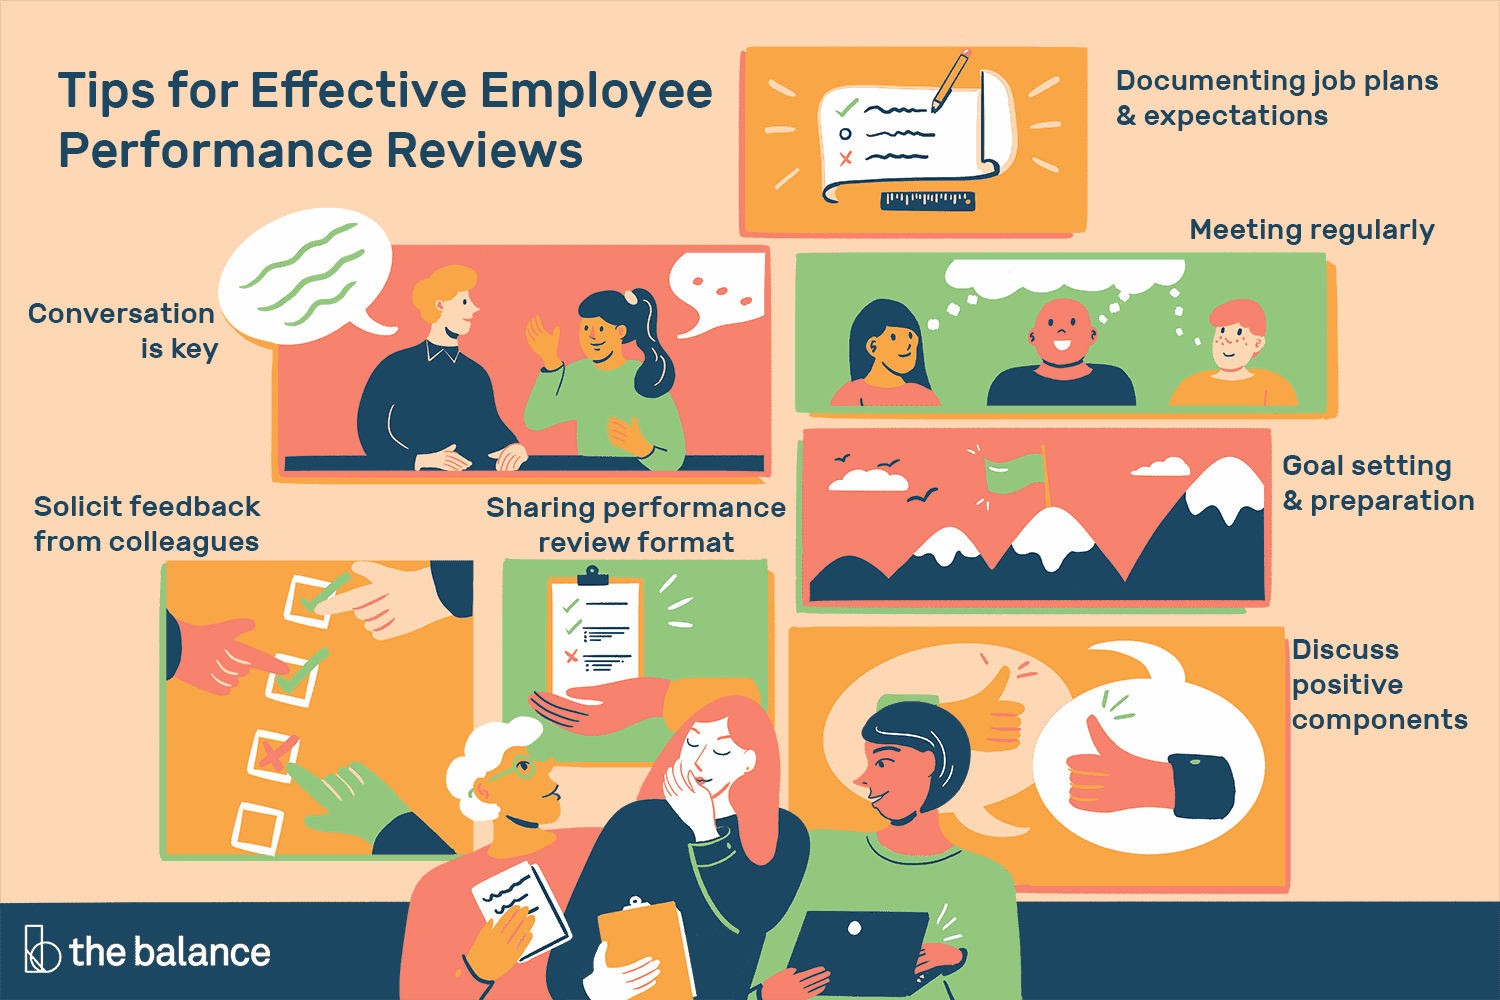 10 Tips For Effective Employee Performance Reviews